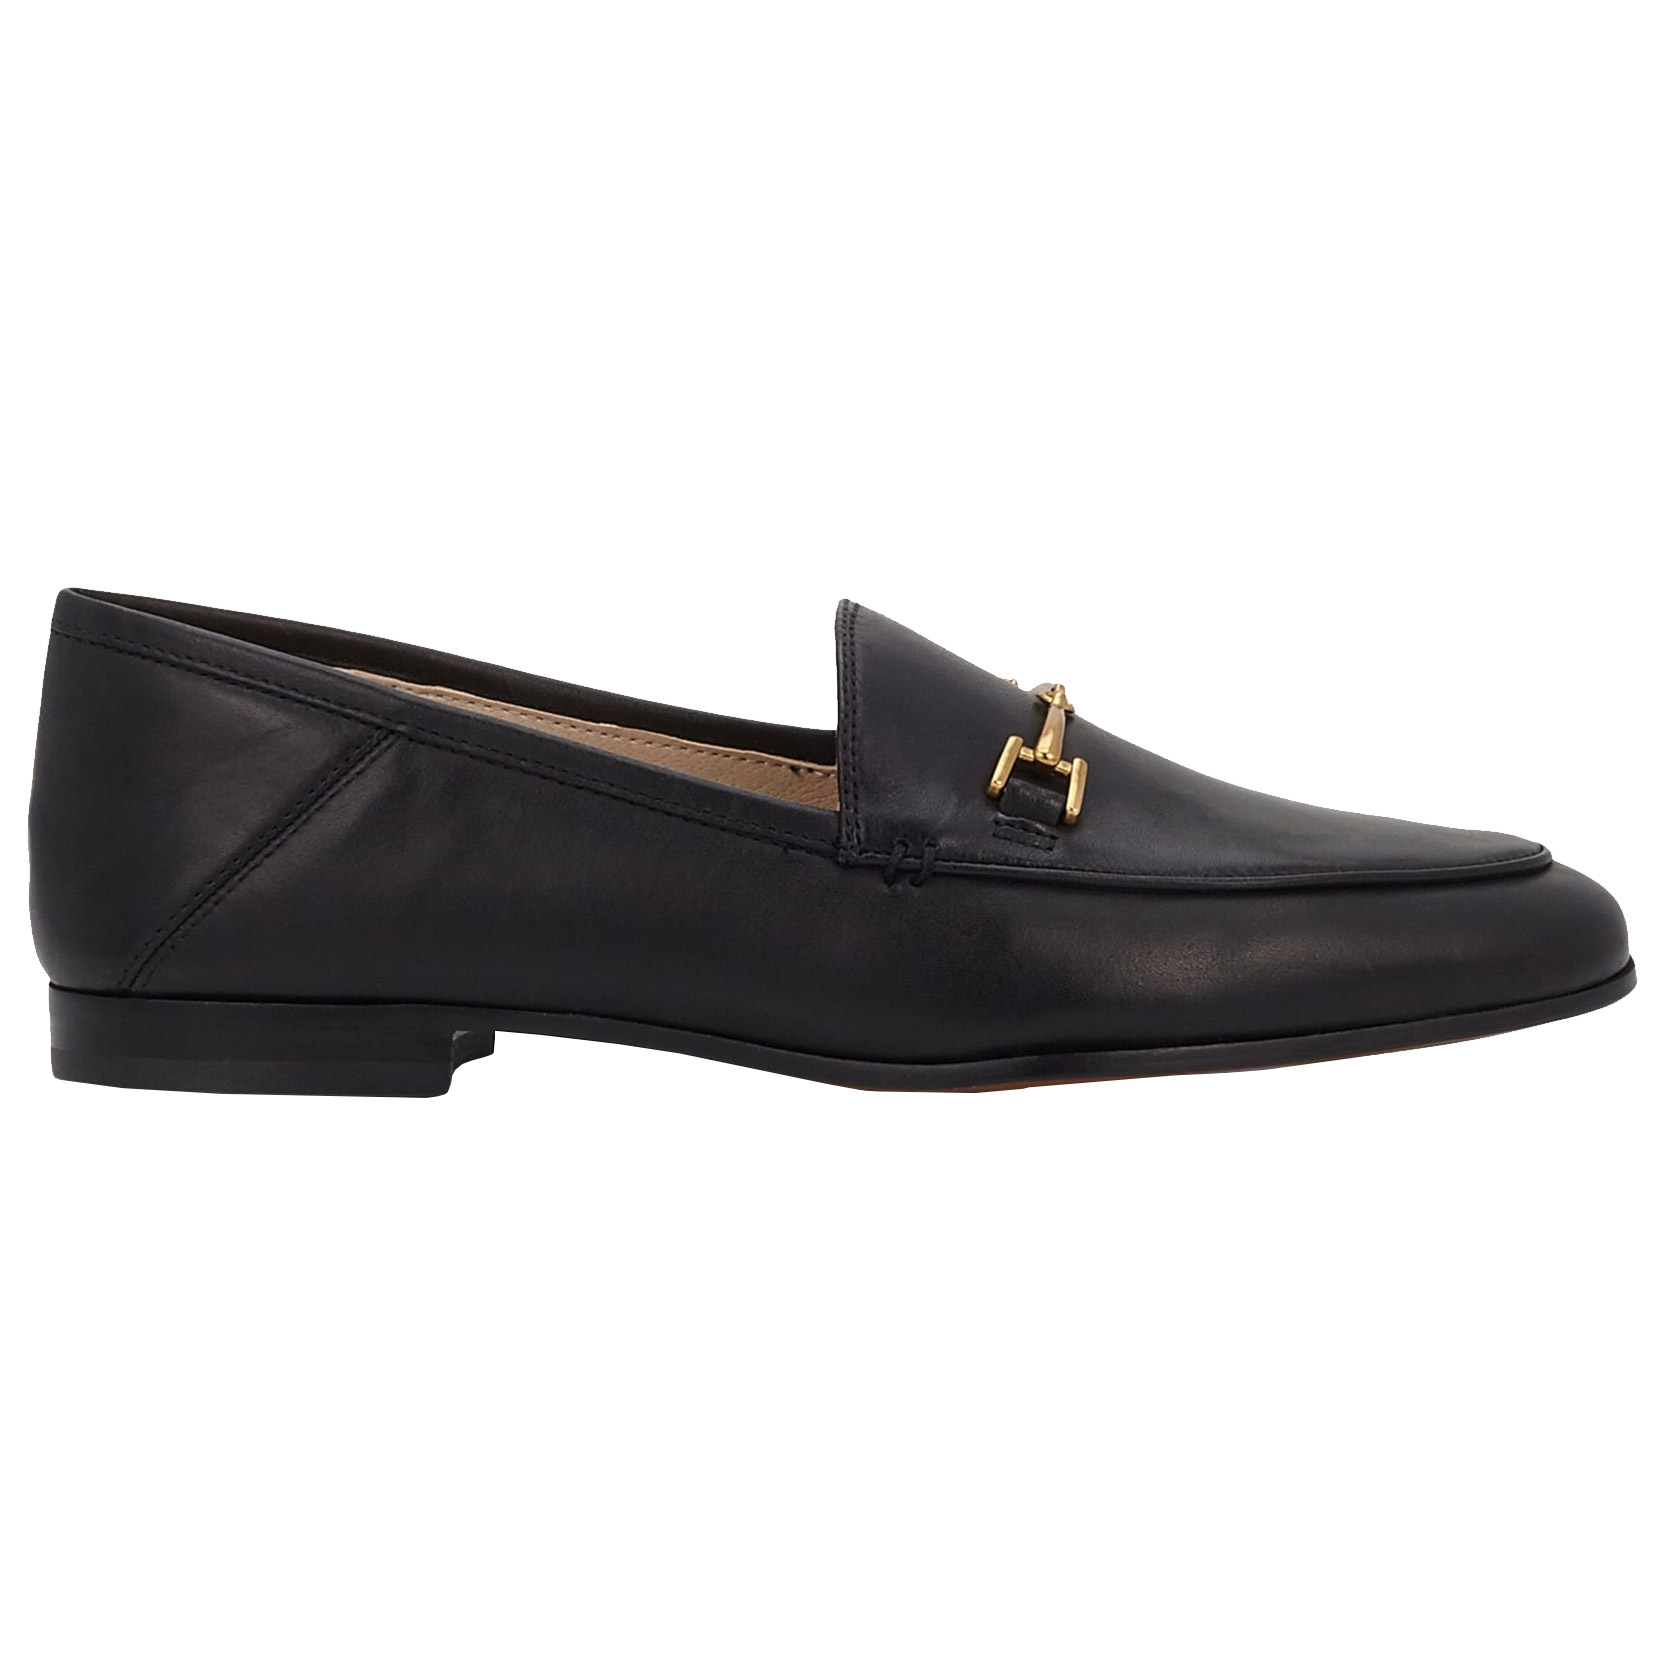 LORAINE LEATHER LOAFERS